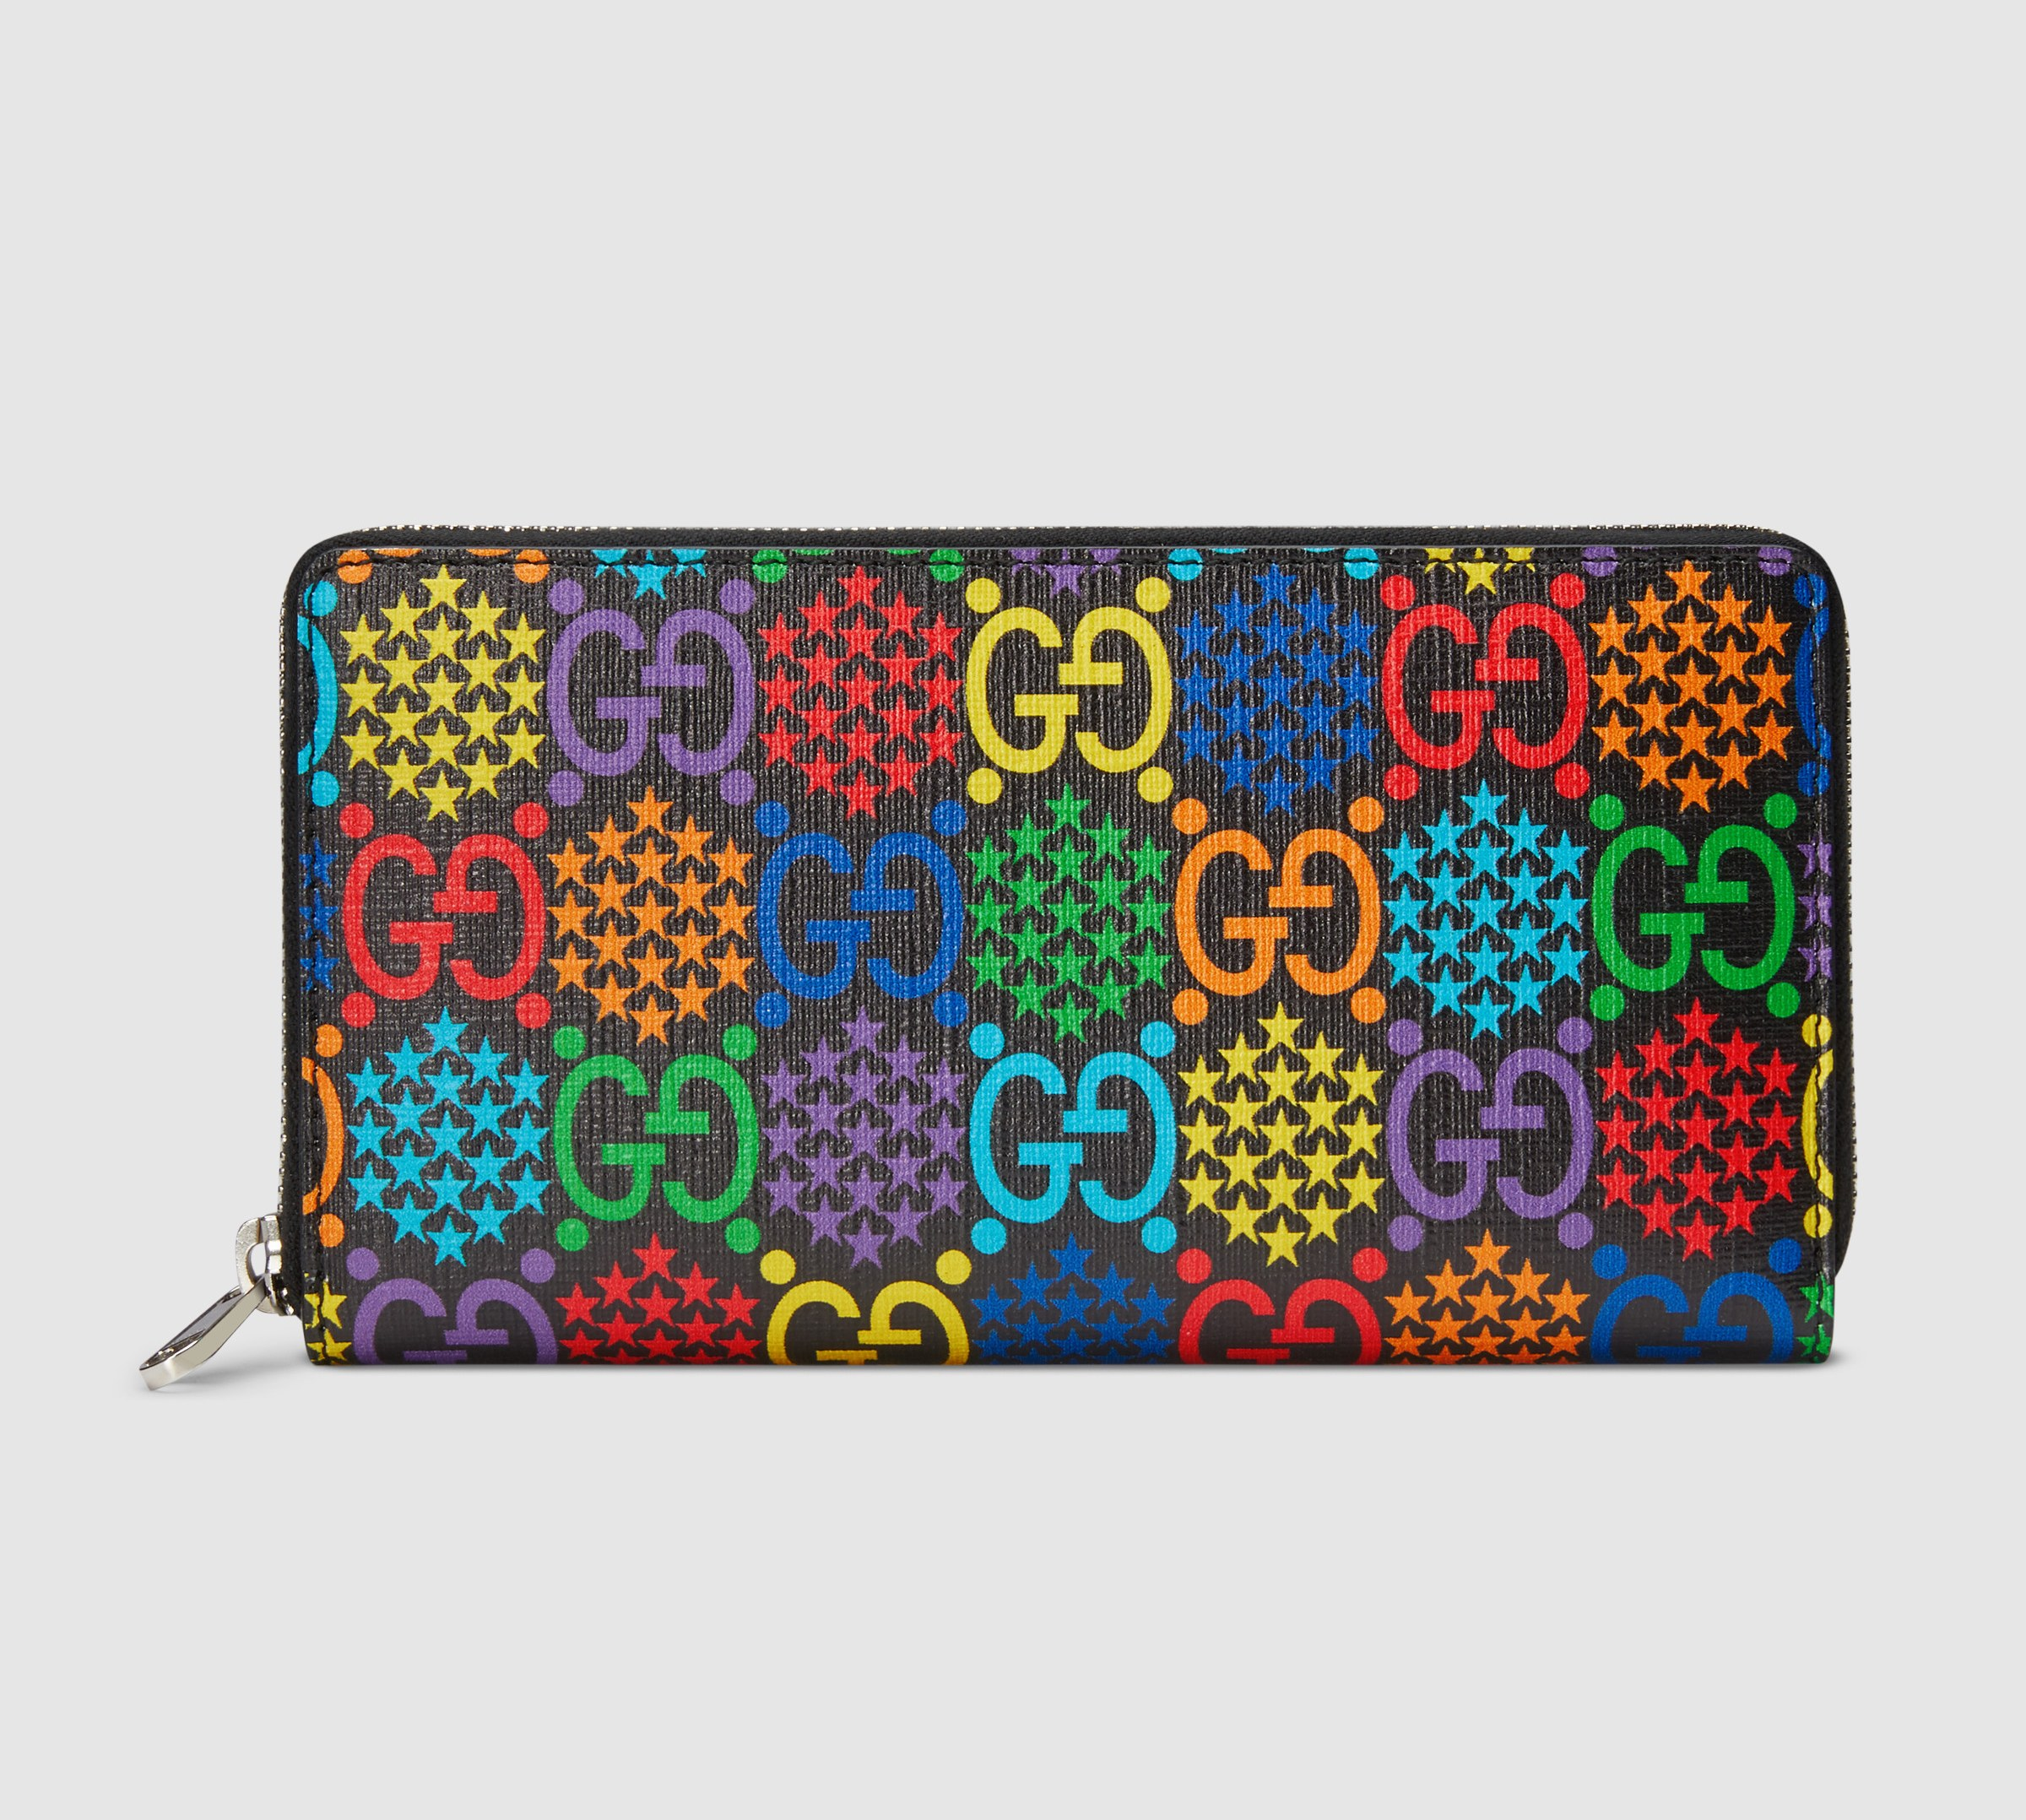 Gucci GG Psychedelic Zip Around Wallet 601079 Black Leather Trim